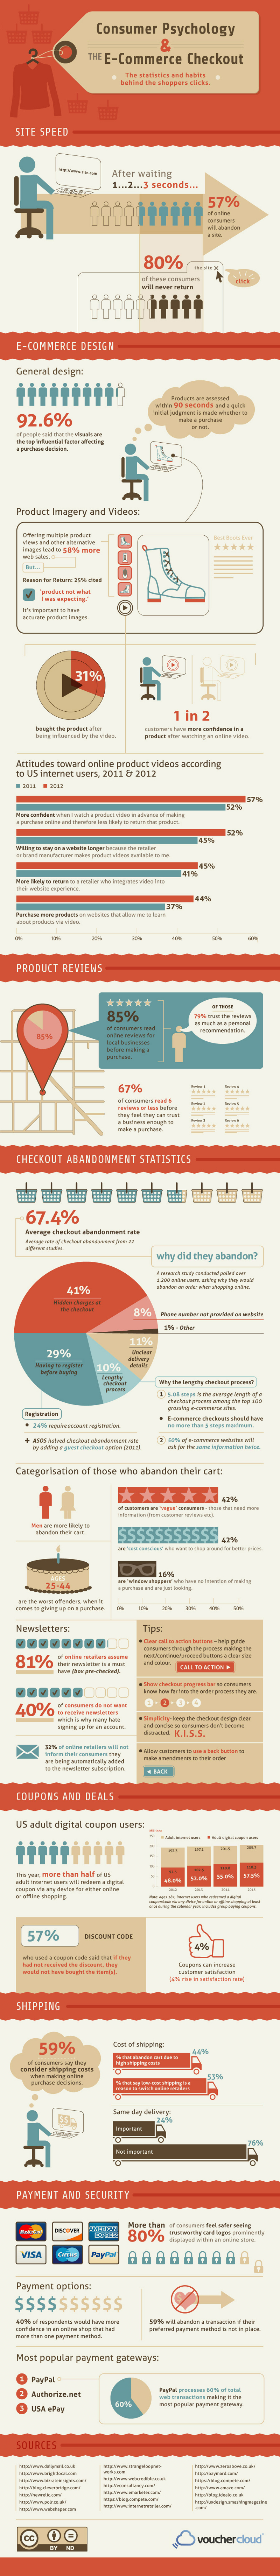 Facts About Consumer Behavior